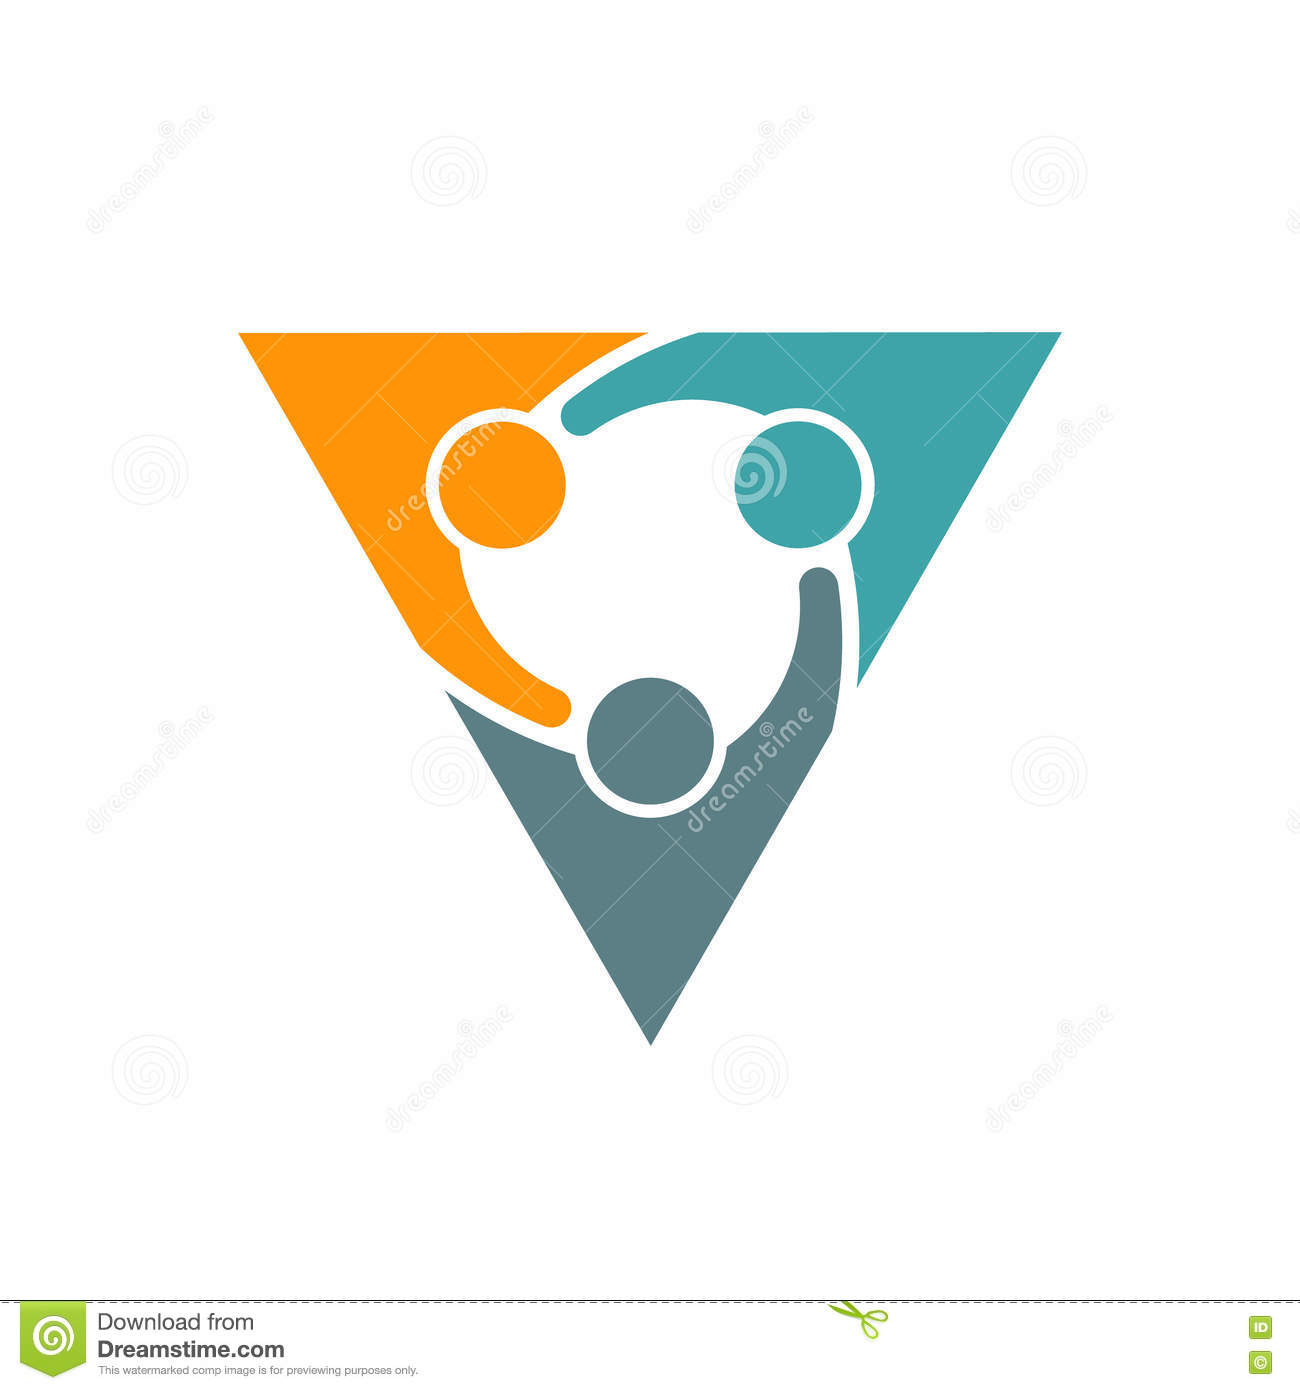 Triangle People Business Partners Illustration